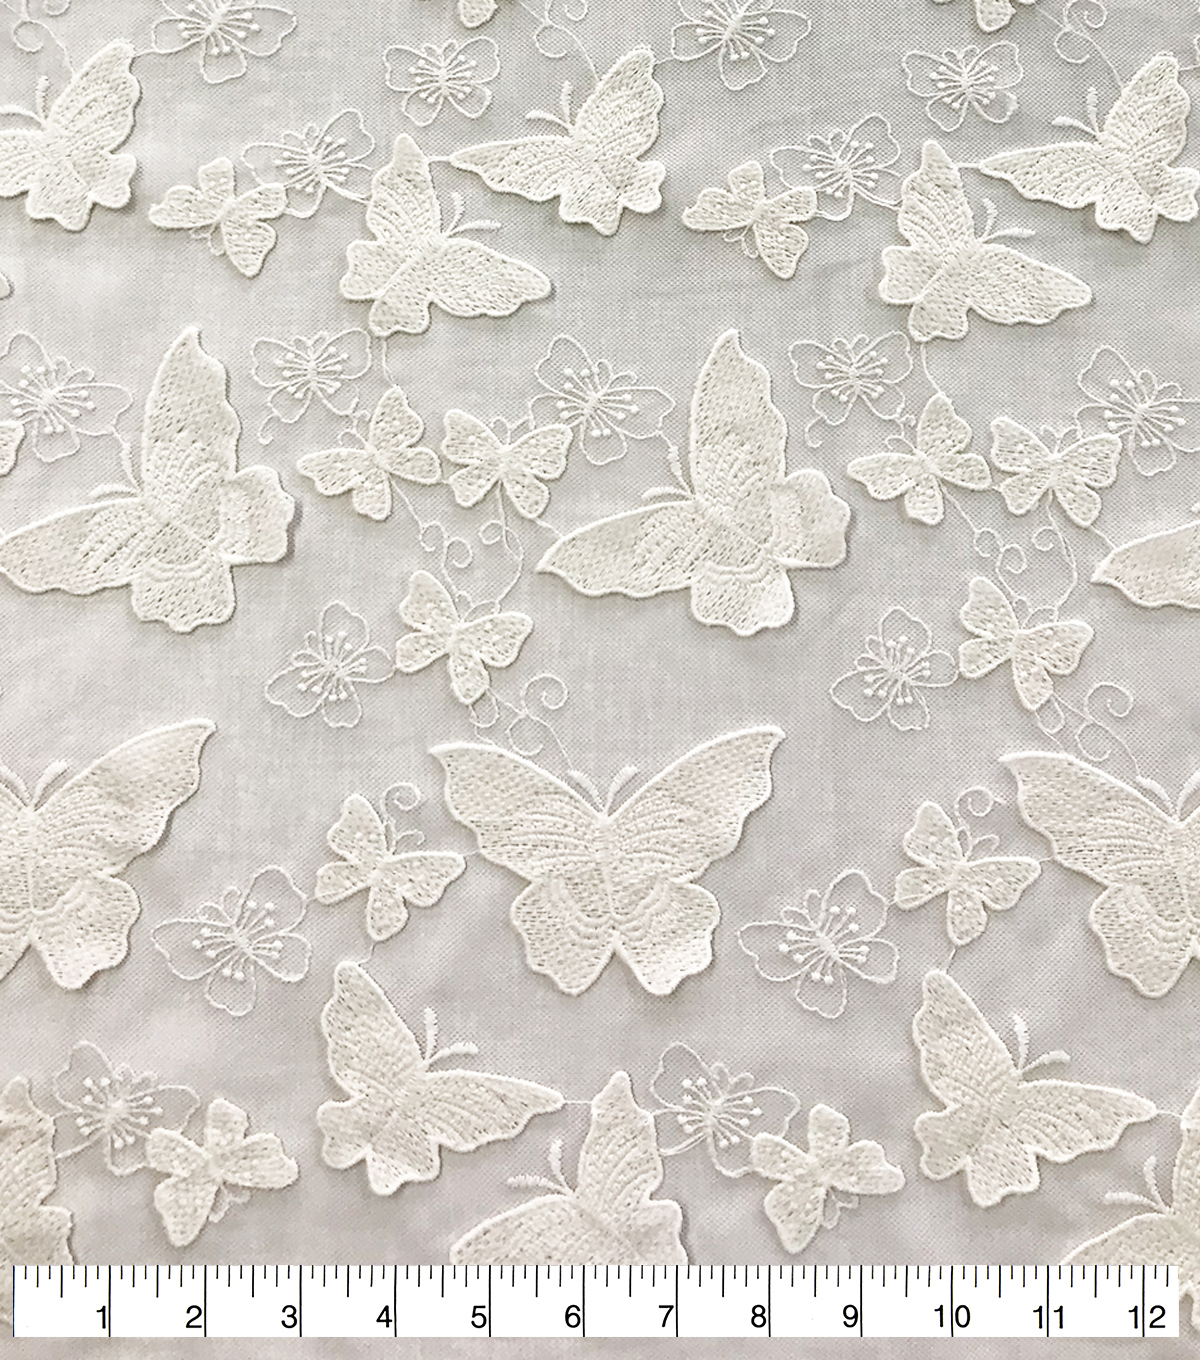 Sew Sweet Dahlia Sheer Mesh Fabric-All Over Embroidered Butterfly White